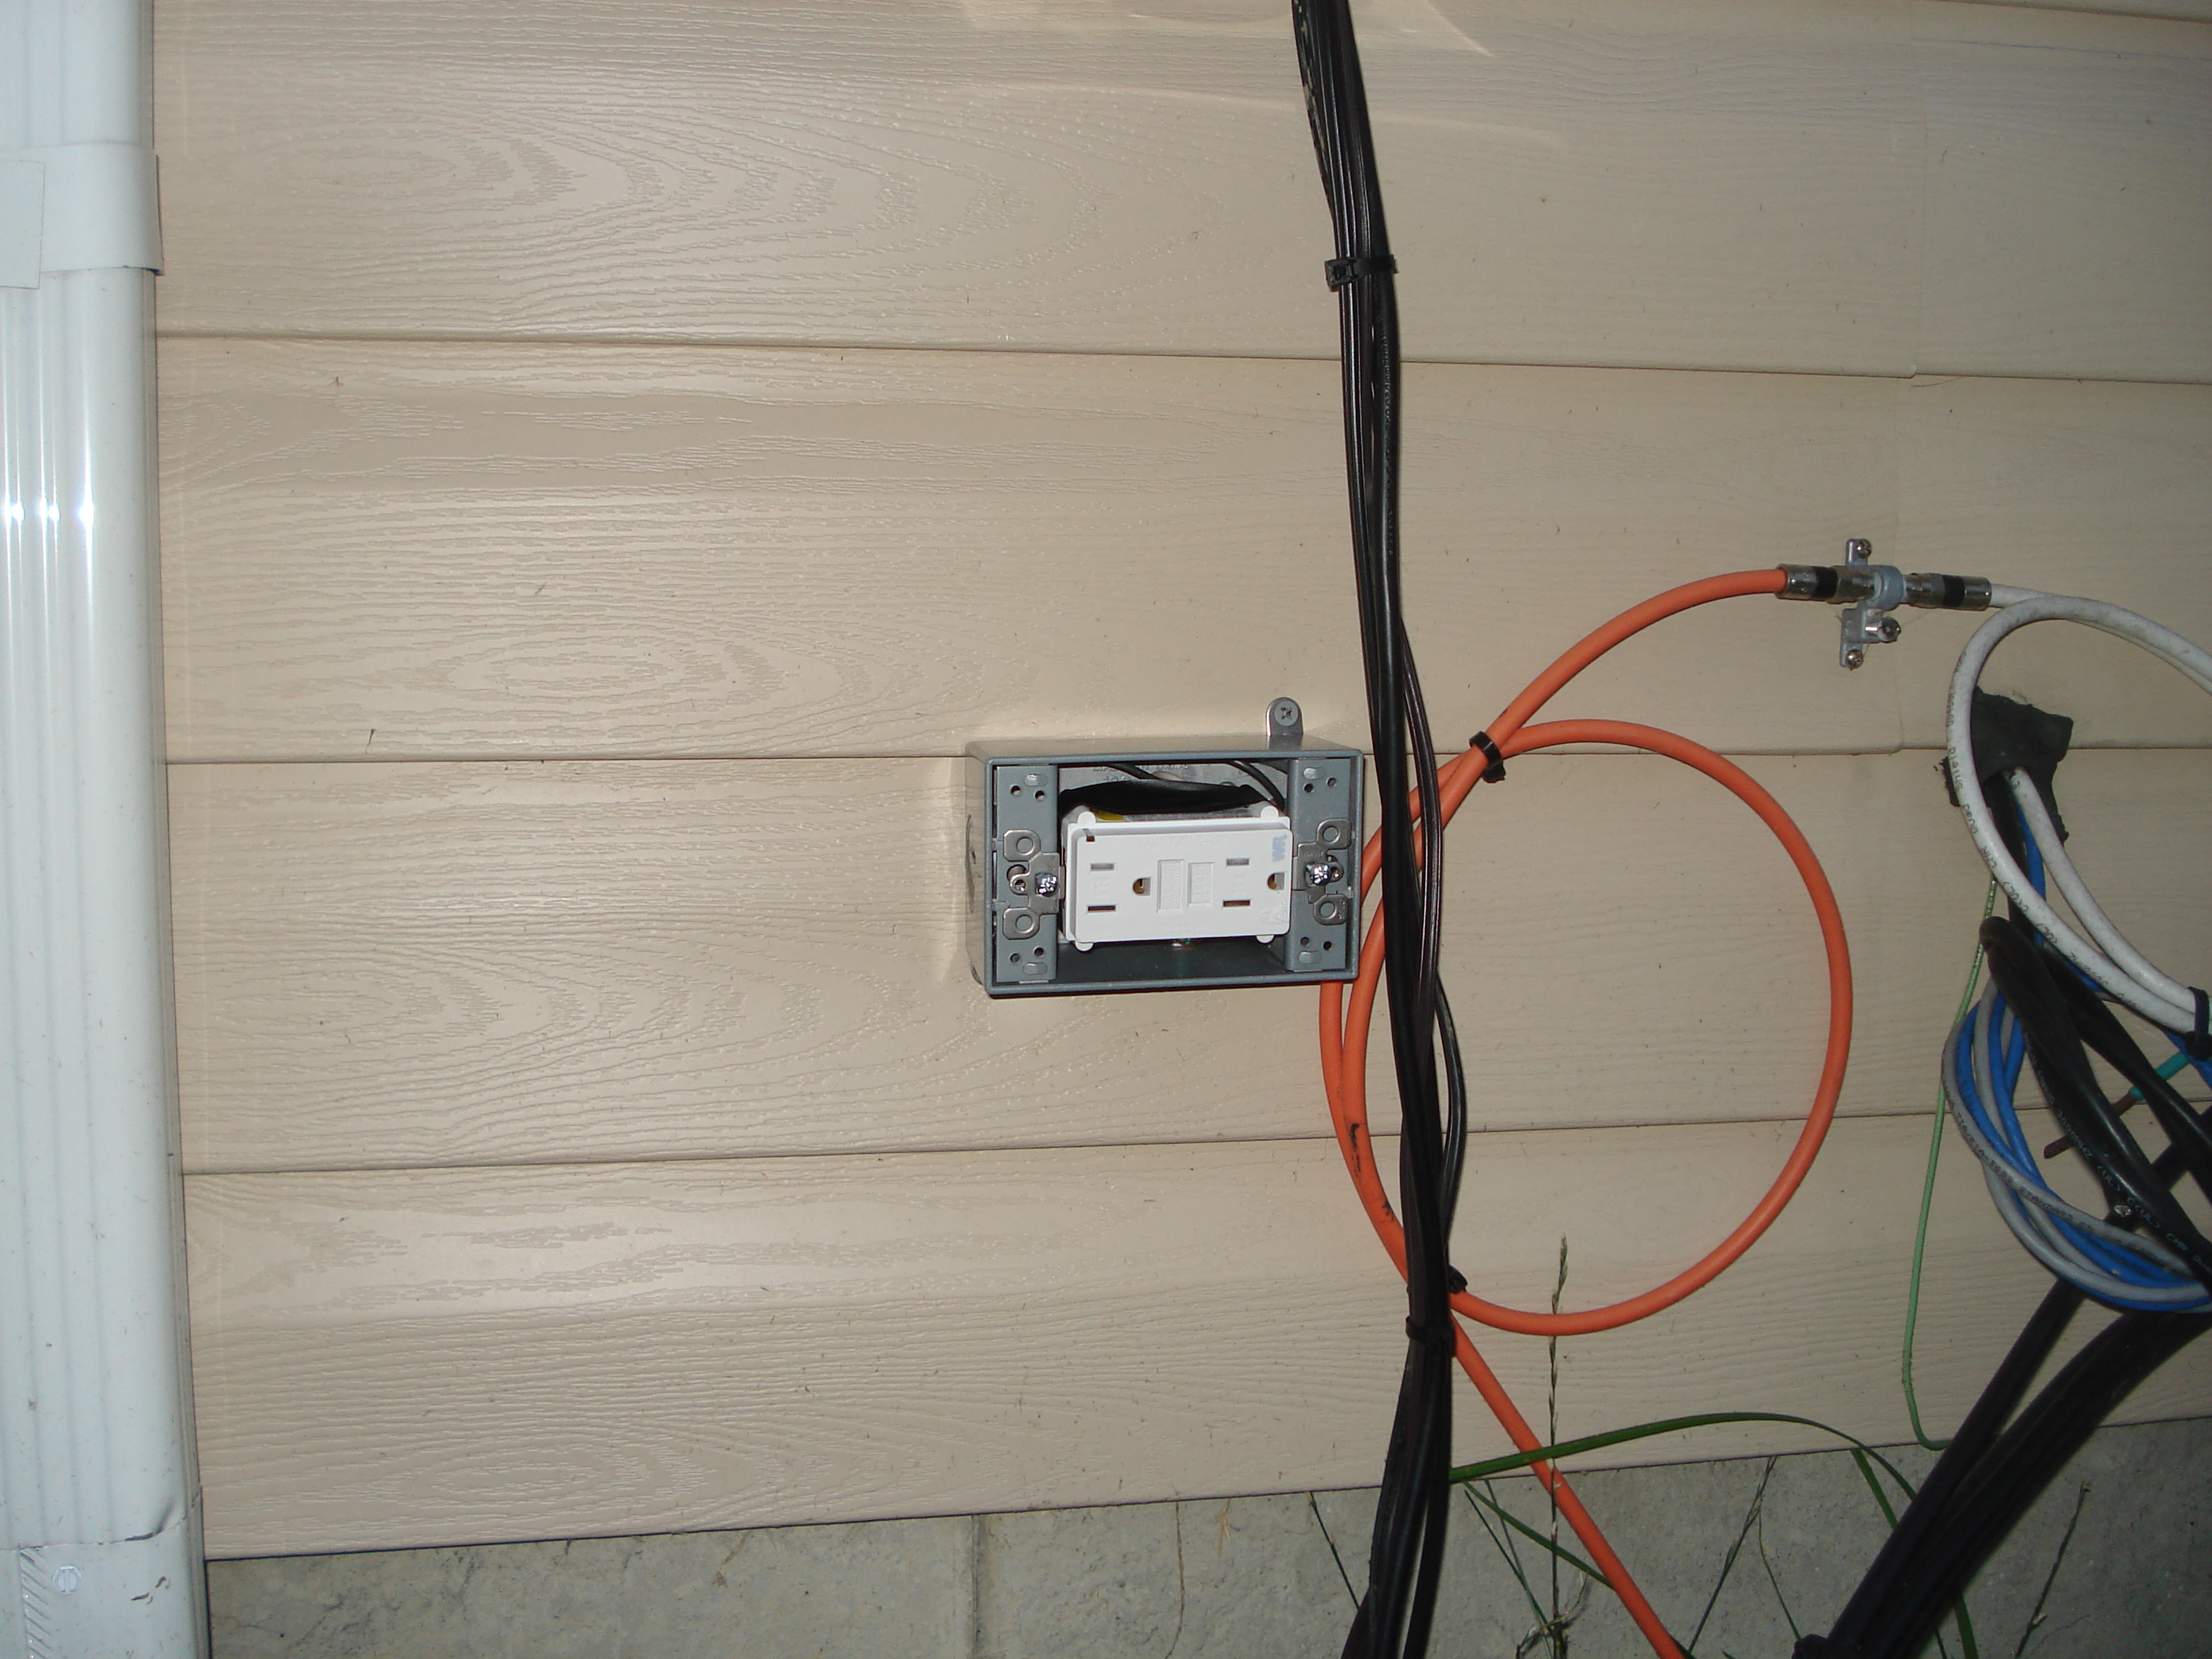 our home from scratch rh ourhomefromscratch com install outdoor electrical box install outdoor electrical box